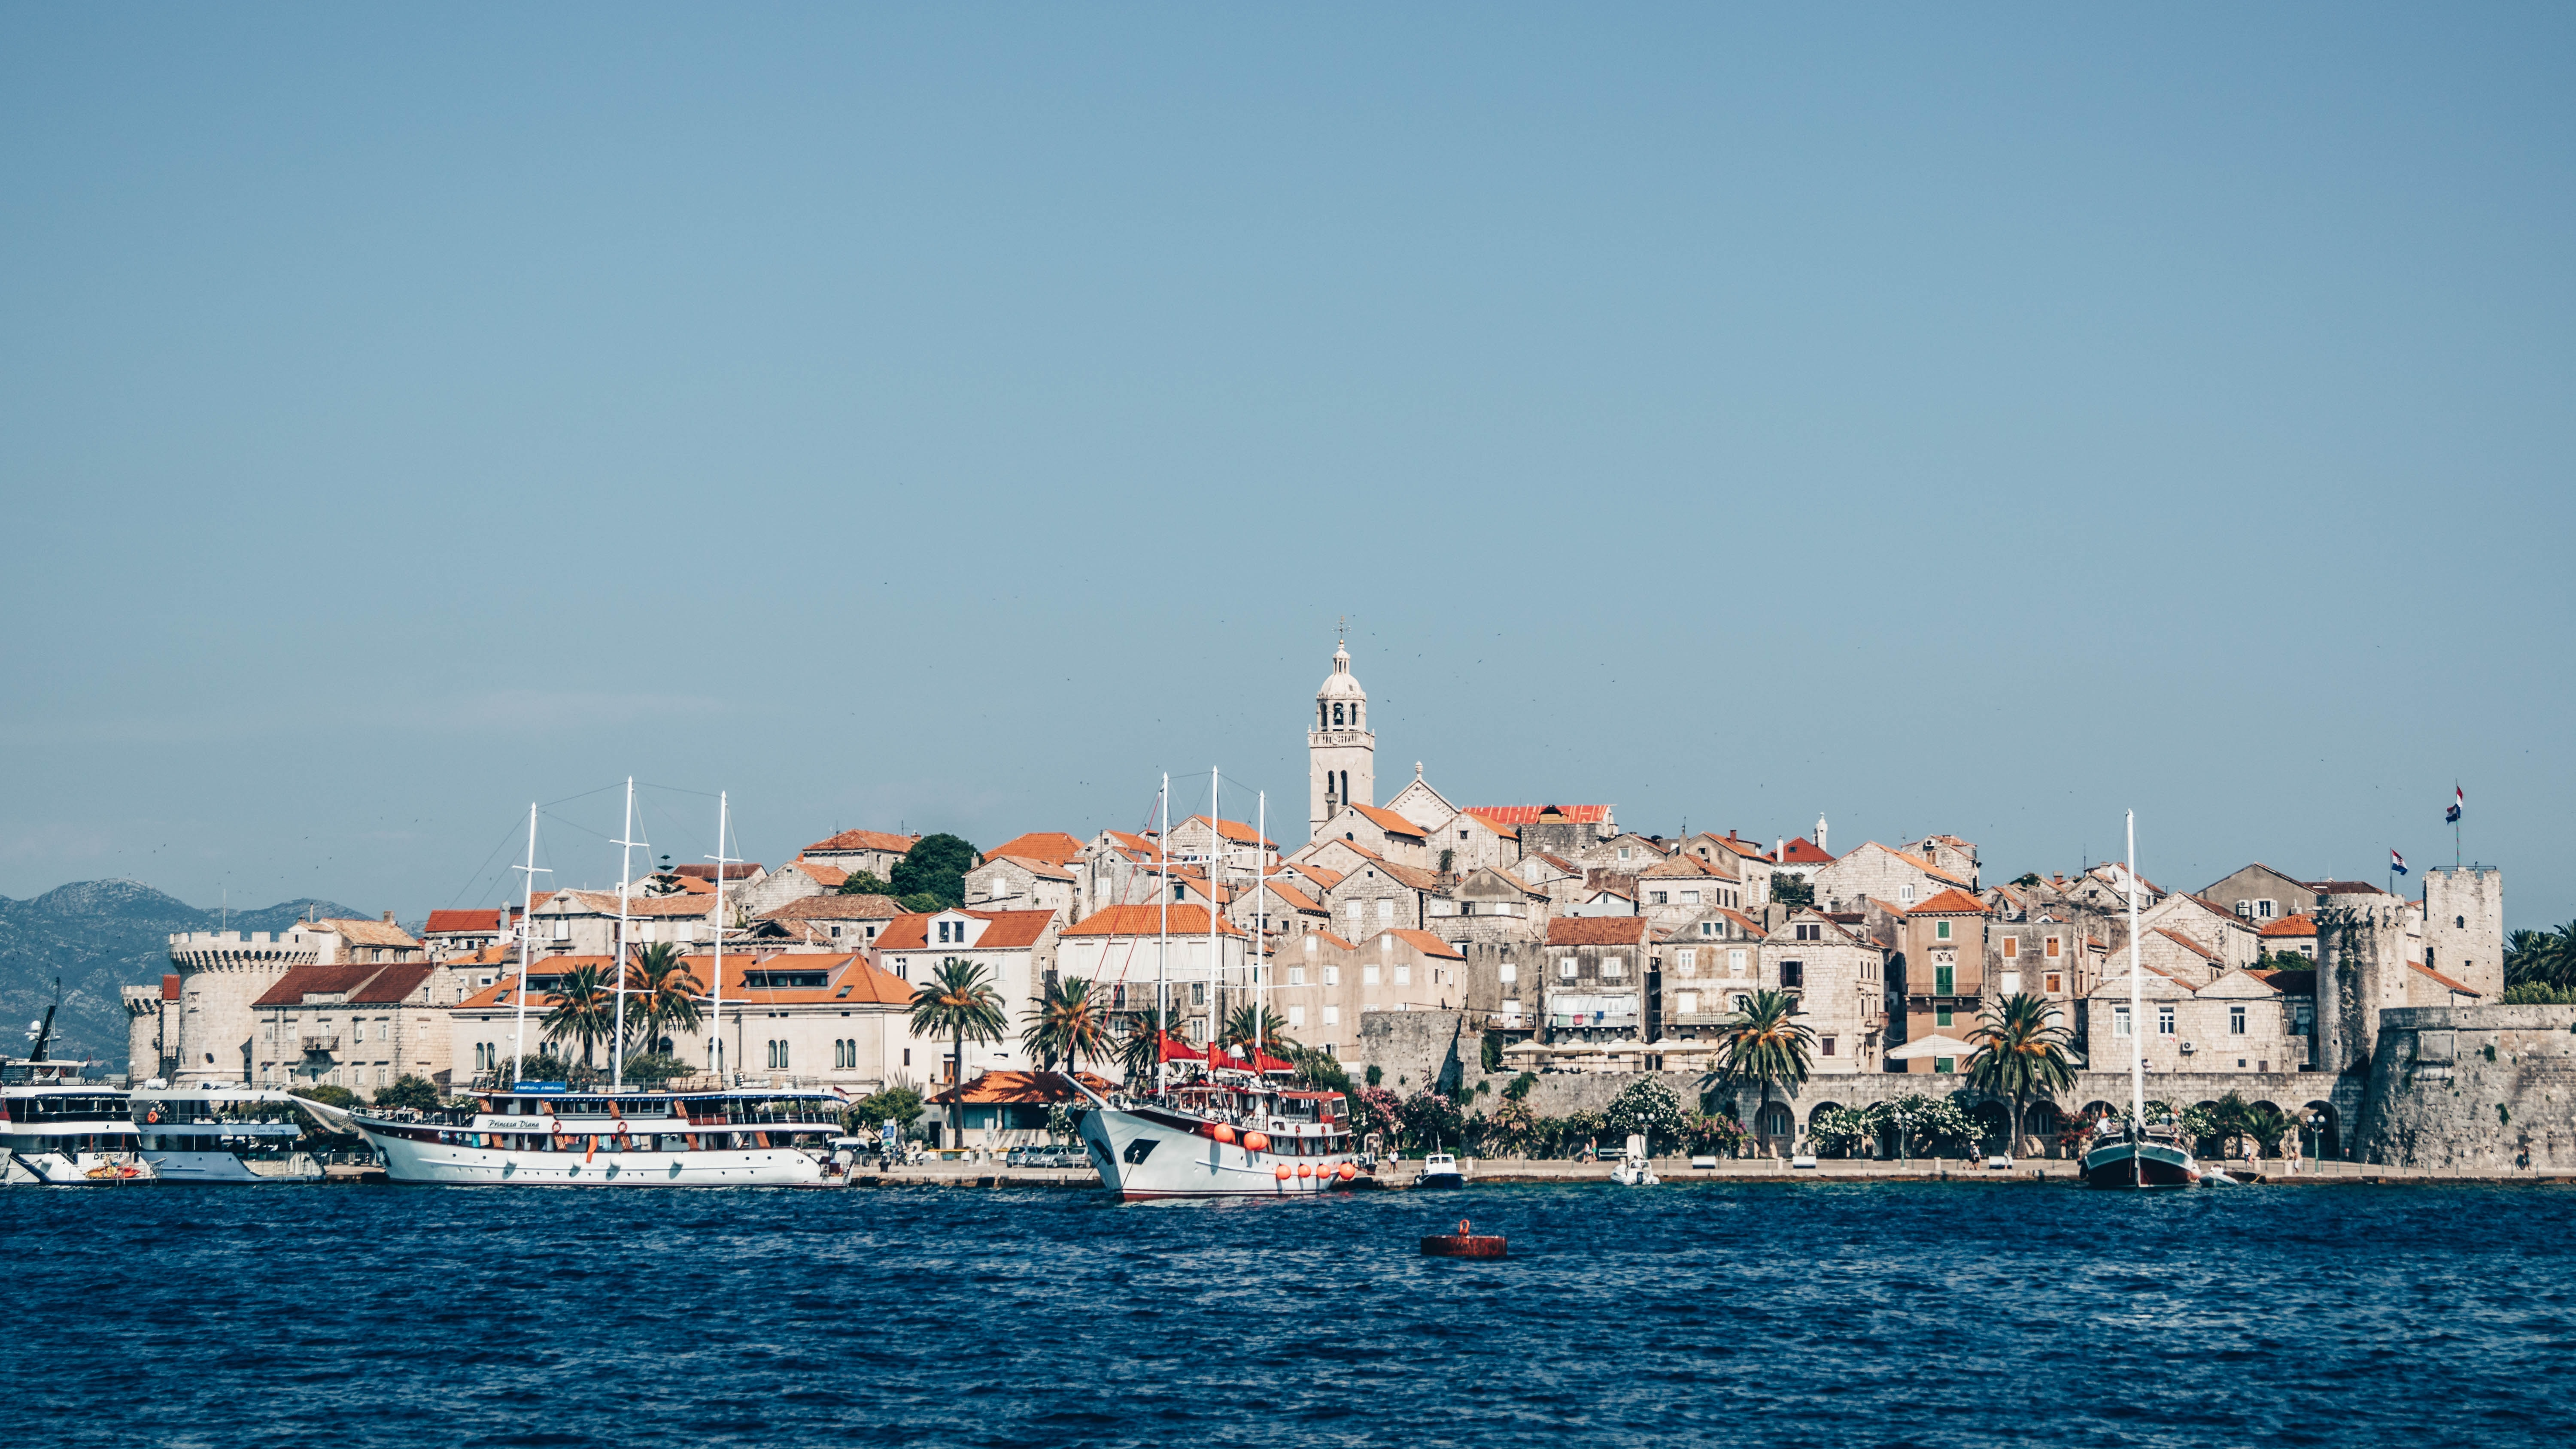 Korcula old town, Croatia Itinerary For 7 Days